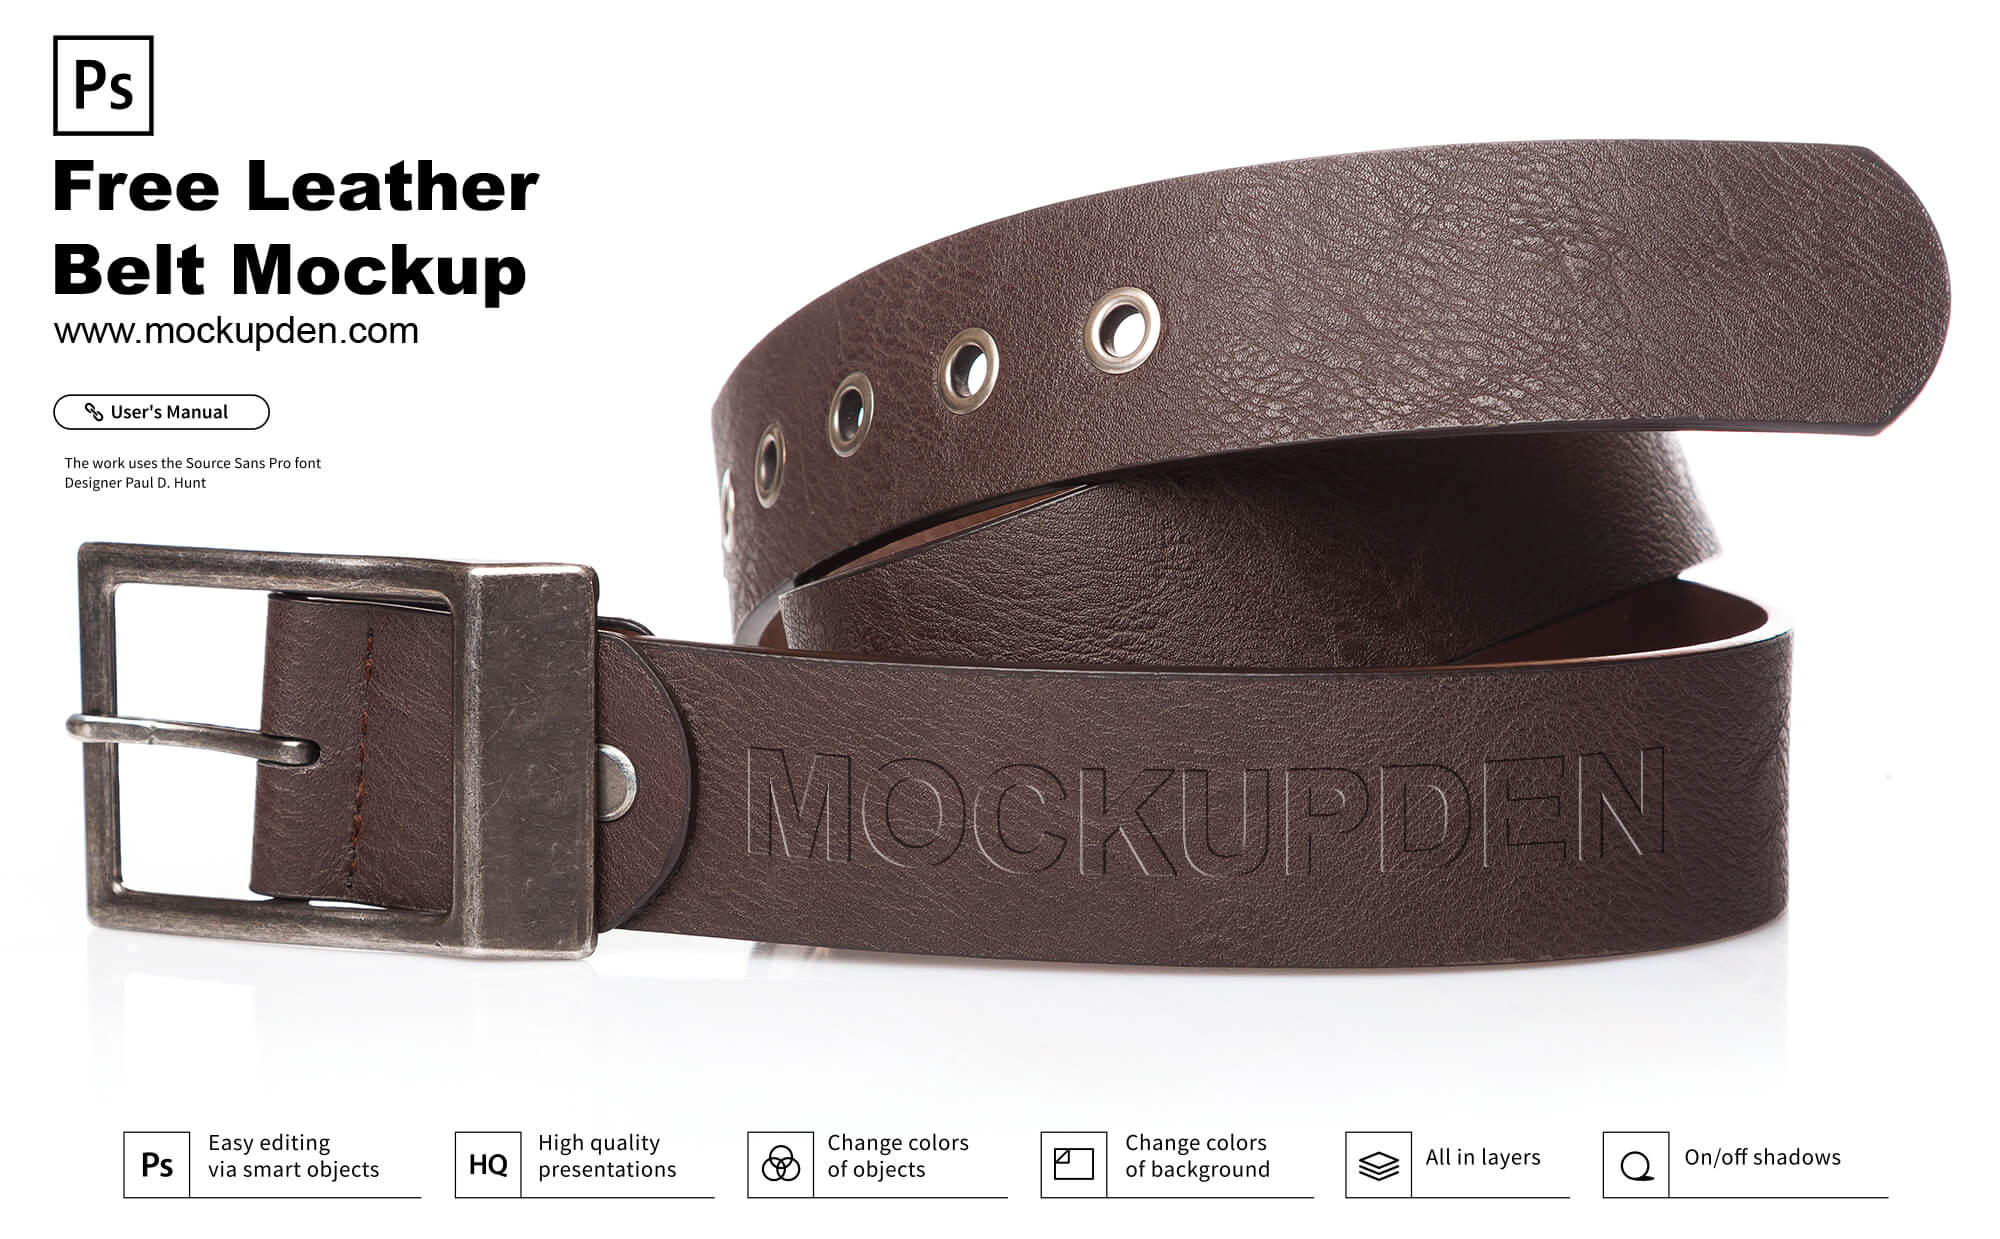 Find out more about how it works and when to replace it for proper engine function. Free Leather Belt Mockup Psd Template Mockup Den